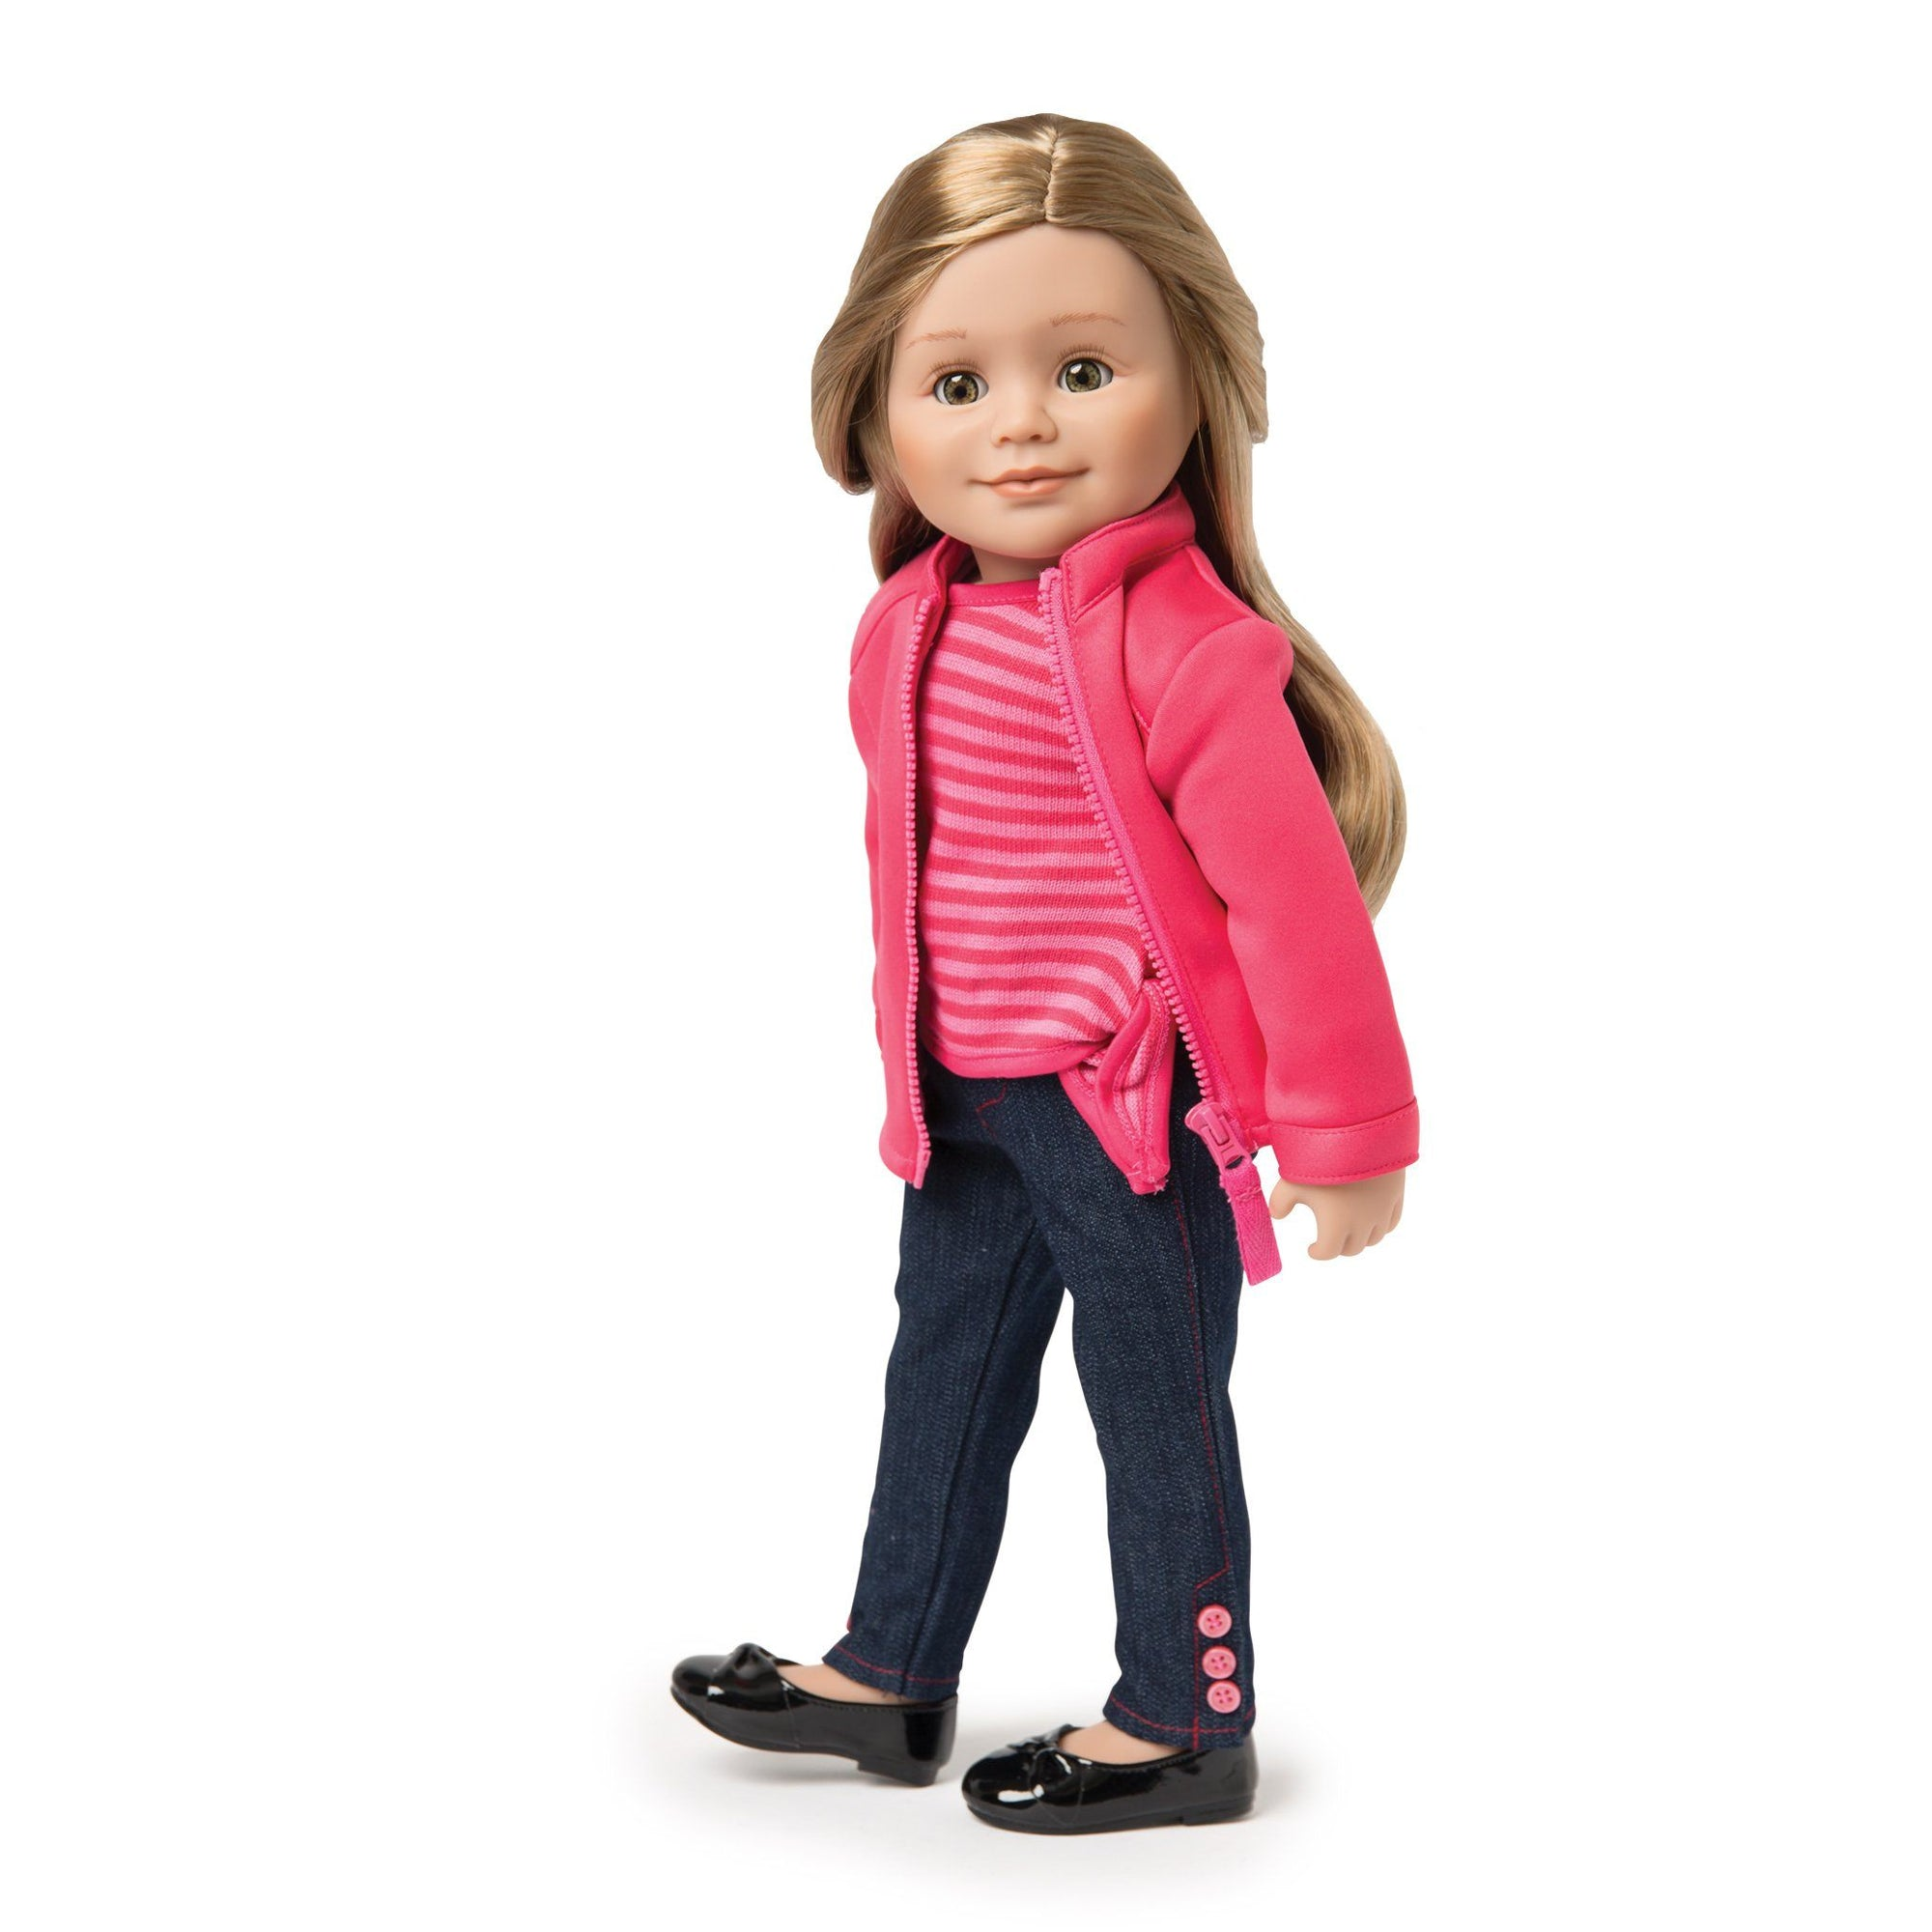 Cirque du Monde pink zip-up sweater, pink striped side-tie shirt, skinny jeans with ankle buttons shown on KL1 Leonie doll. Fits all 18 inch dolls.